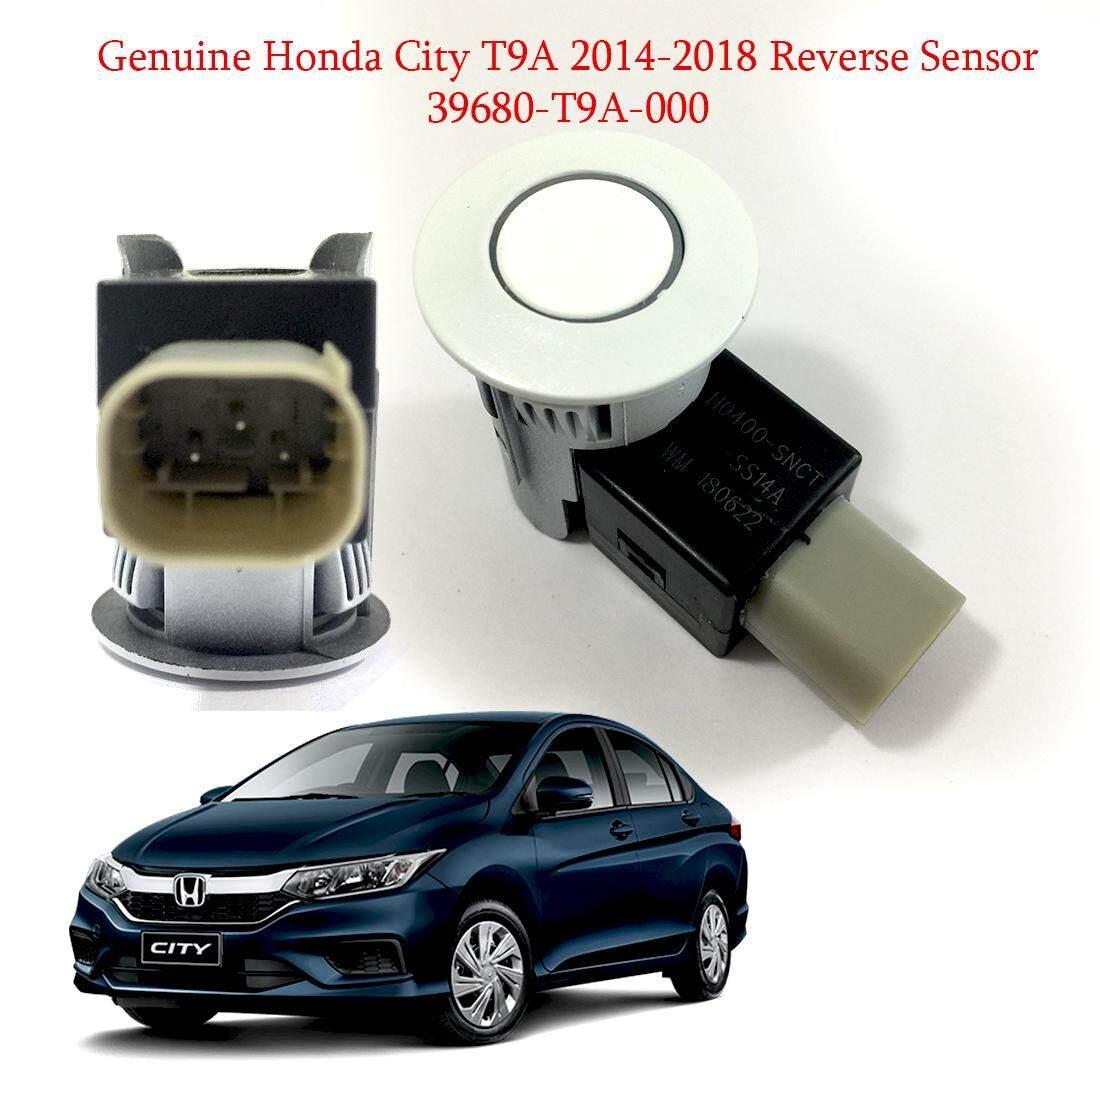 Honda Auto Parts Spares Price In Malaysia Best Wiring Relay Lampu Kereta Genuine City T9a 2014 2018 Reverse Sensor 39680 000